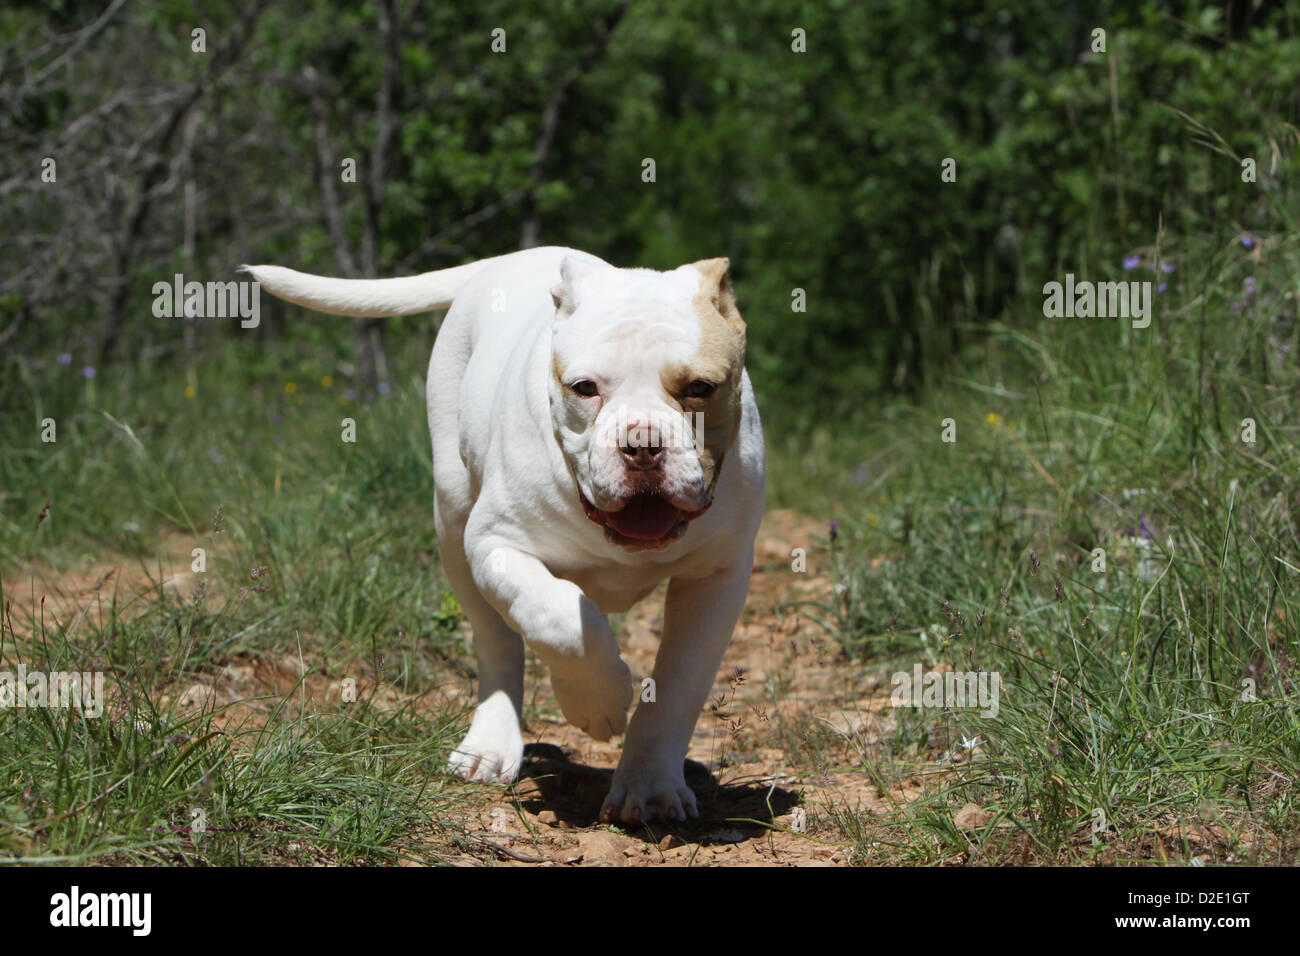 Dog American Bulldog Bully Puppy Running Stock Photo 53169000 Alamy